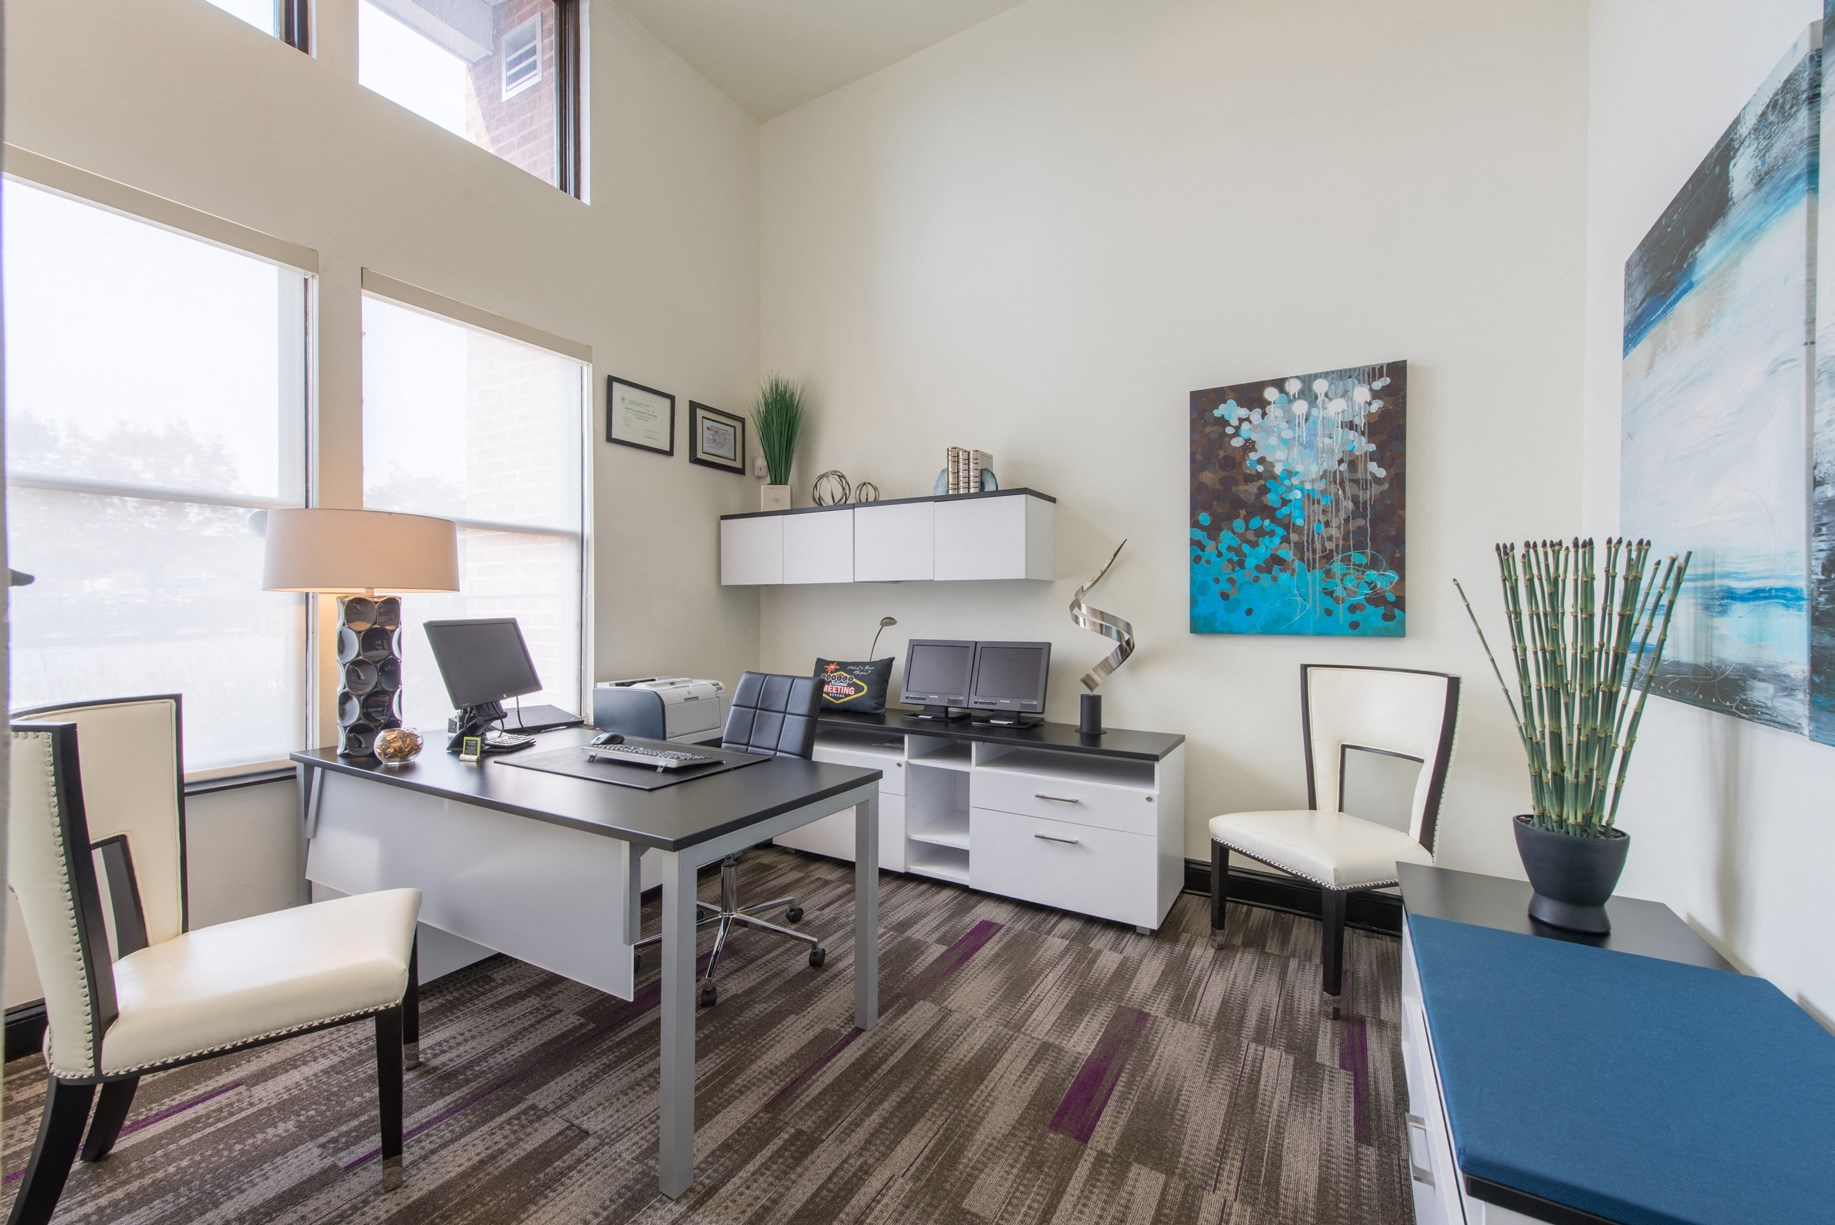 Leasing Office at The Flats at Wheaton Station in Wheaton, MD